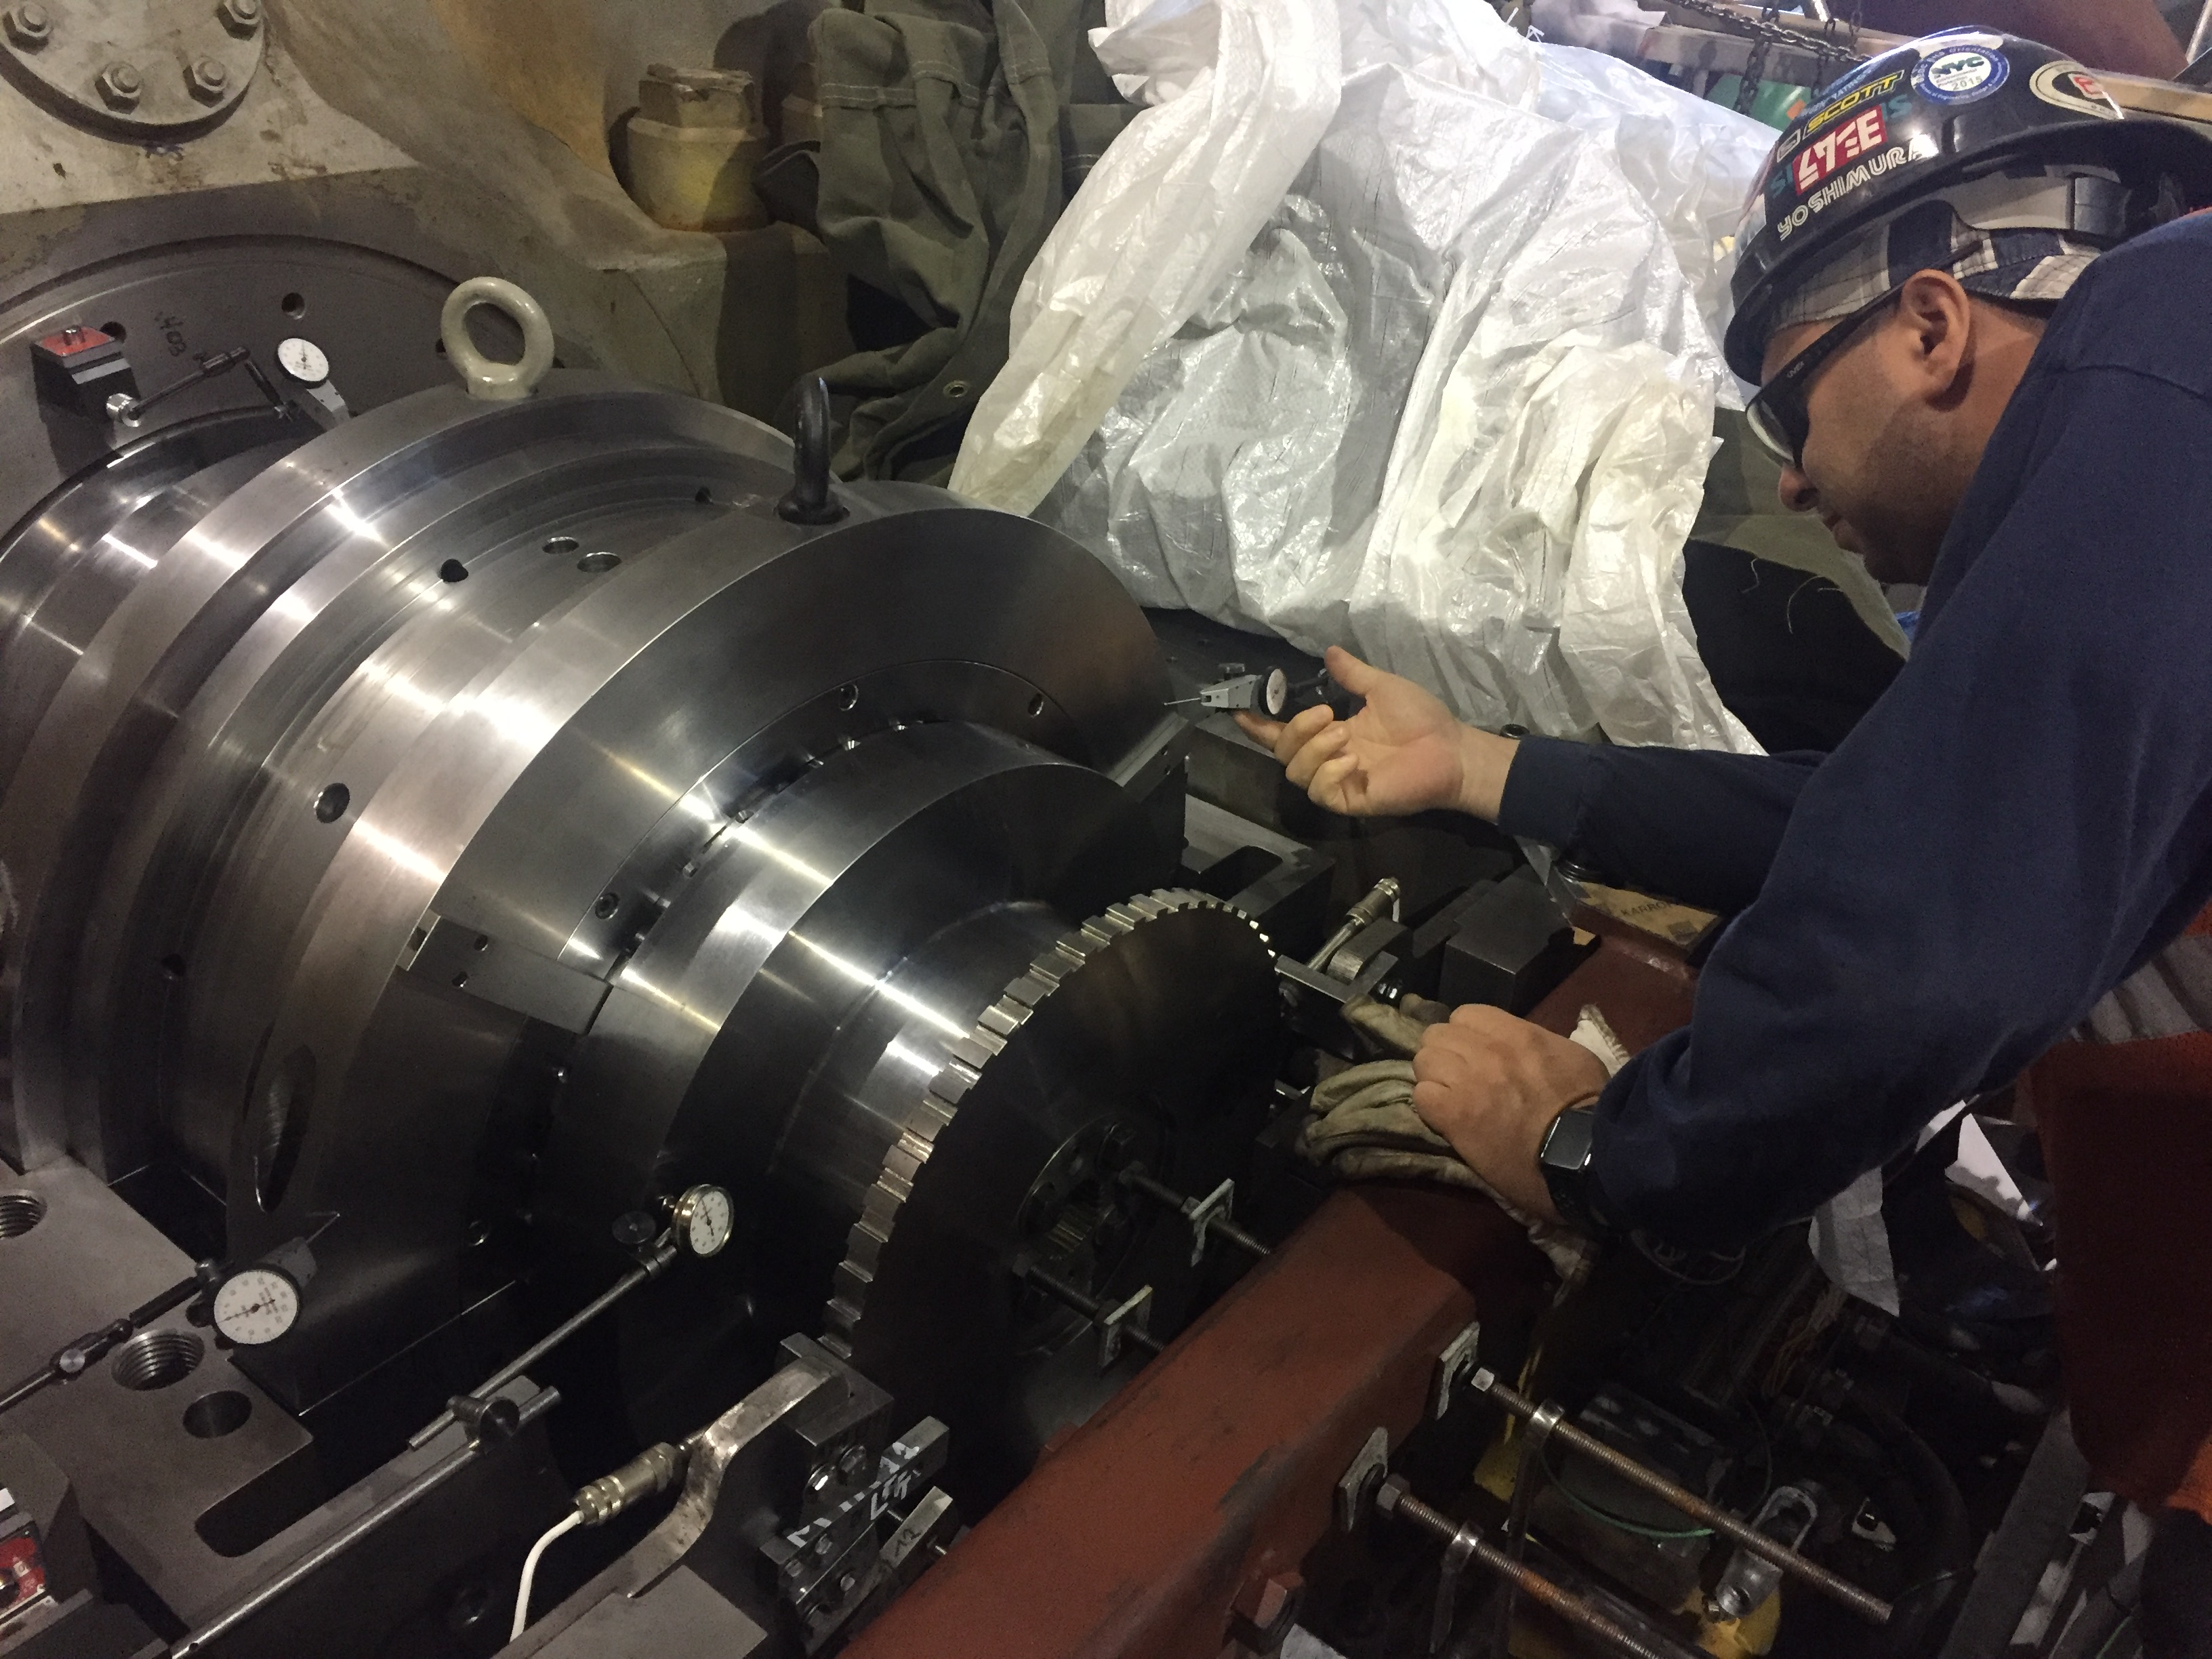 UBC millwrights are elite construction professionals who have exceptional  skills to work primarily with machinery and equipment requiring precision.